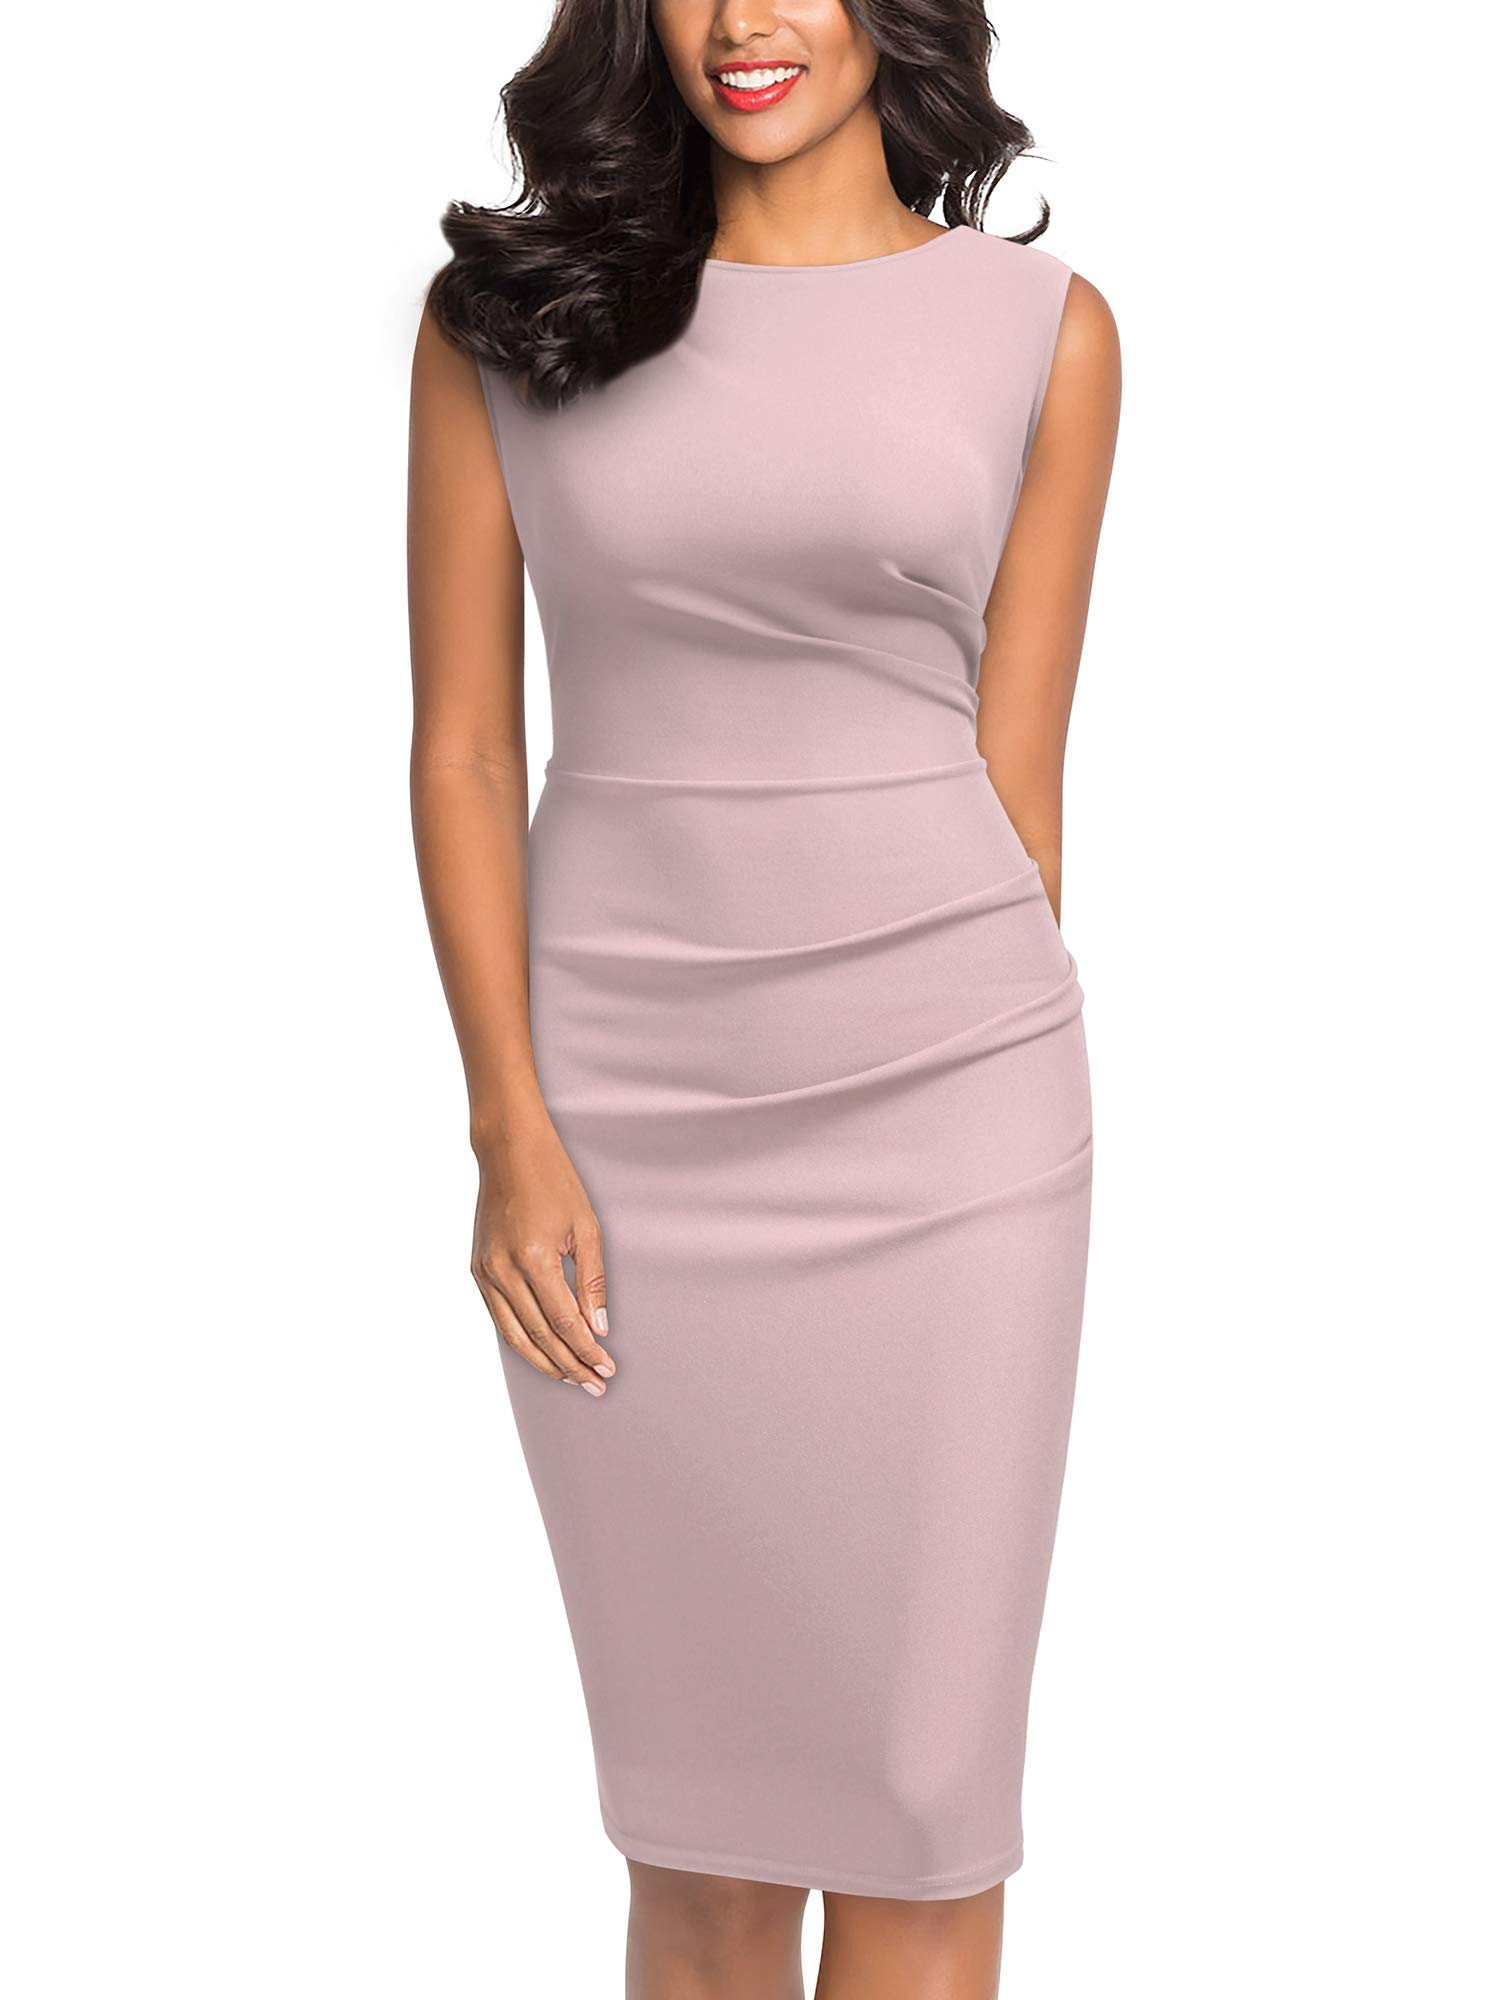 Miusol Women's Retro Ruffle Style Slim Work Pencil Dress